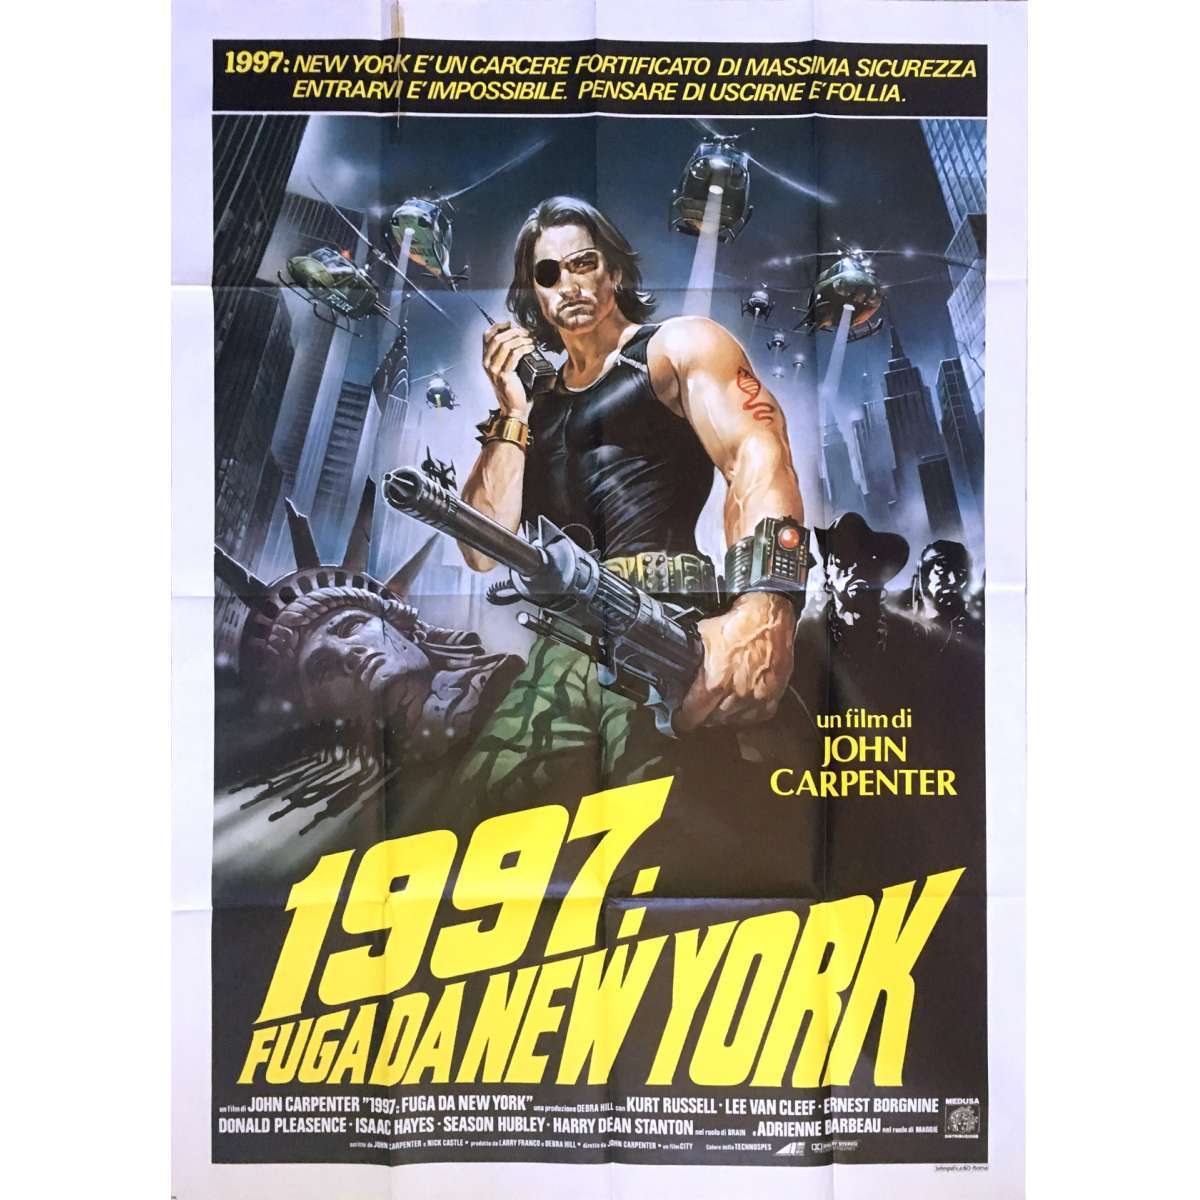 ESCAPE FROM NEW-YORK Movie Poster 39x55 In